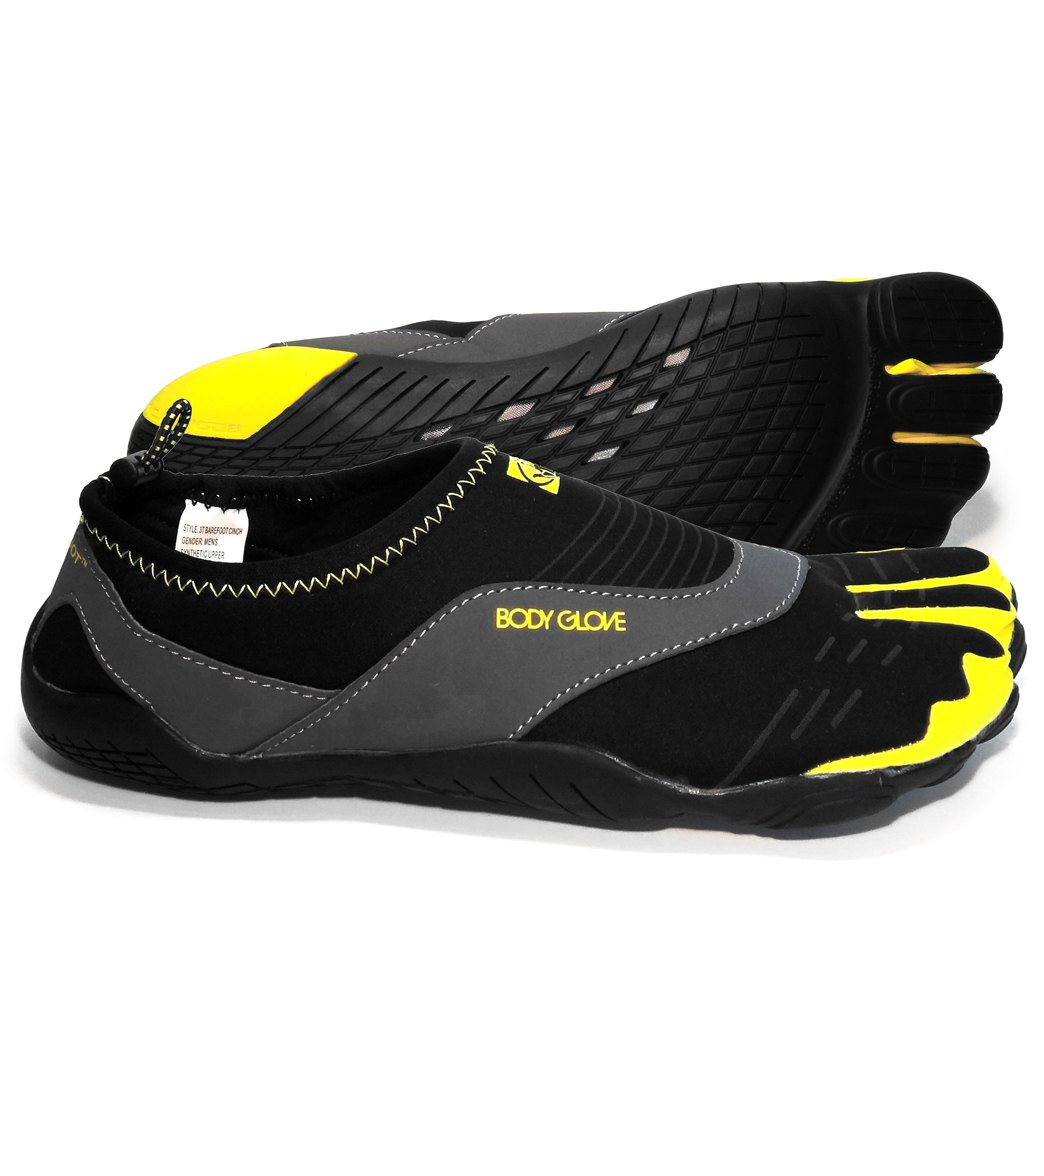 b9267720aac4 Body Glove Men s 3T Barefoot Cinch Water Shoe at SwimOutlet.com